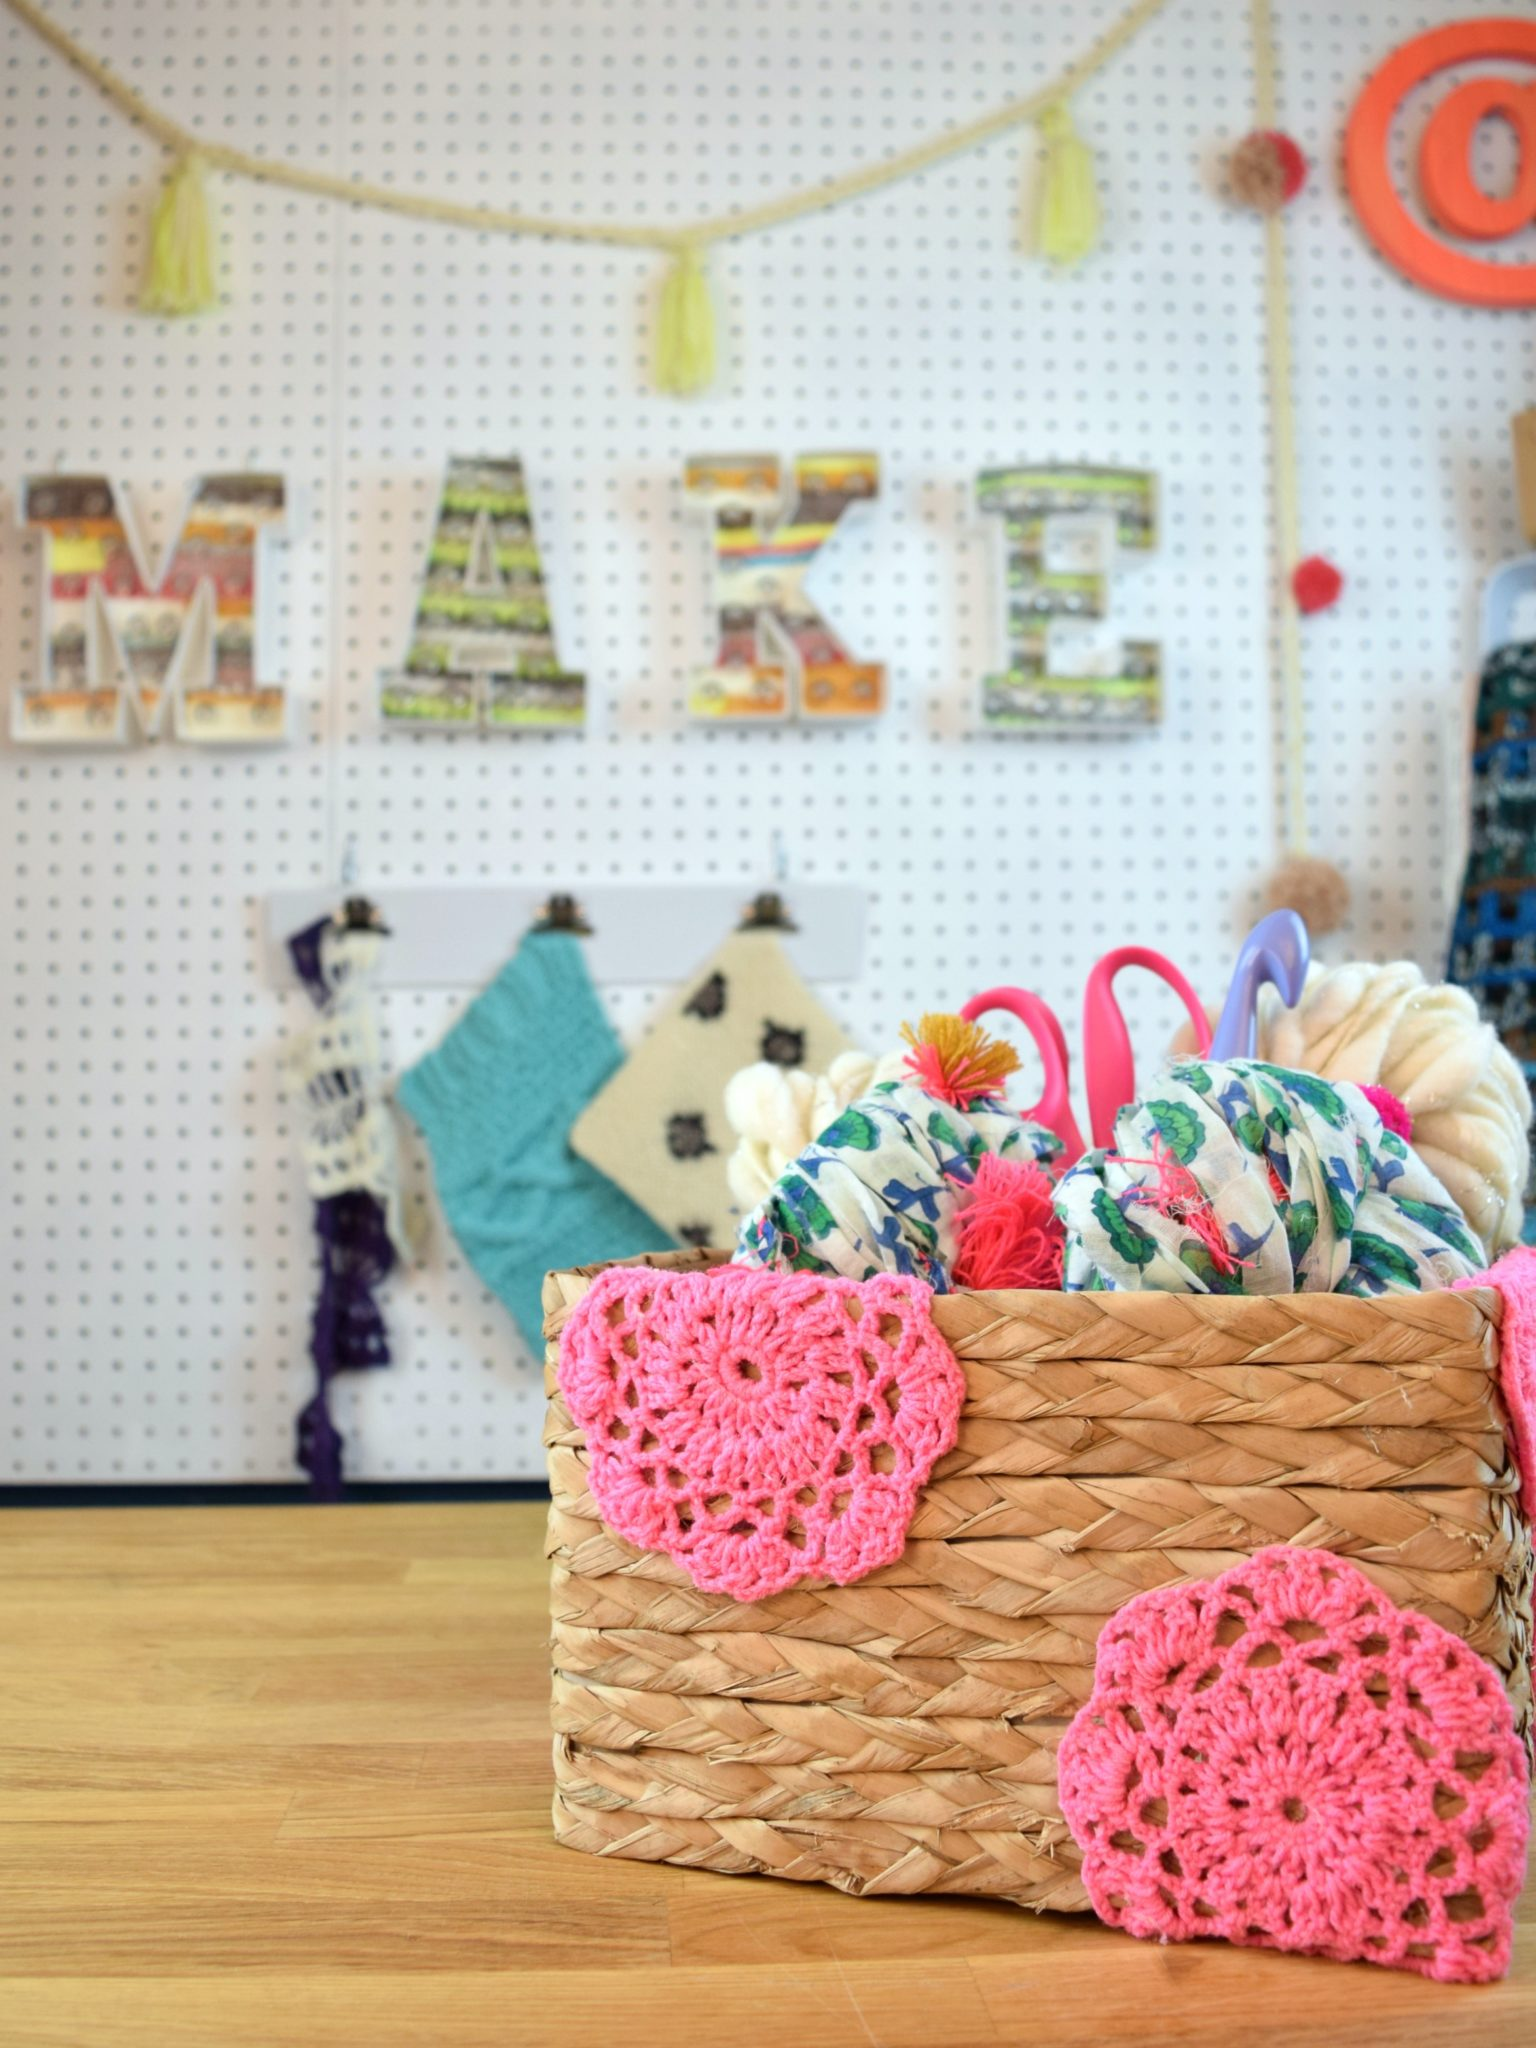 Adding doilies to a plain basket.